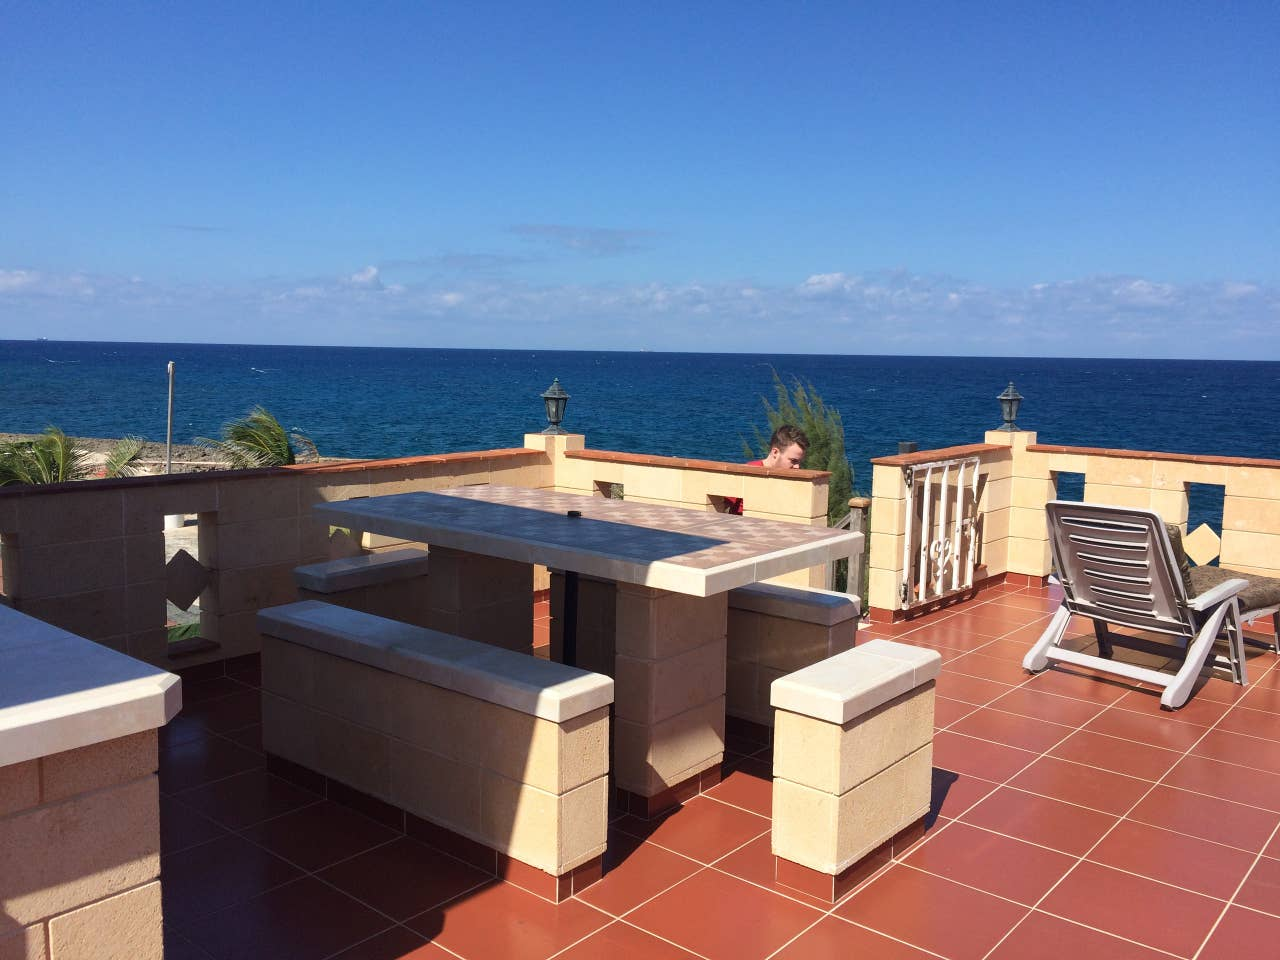 Apartment Casa Oceanview 4 - Luxury   Amazing View photo 23408806